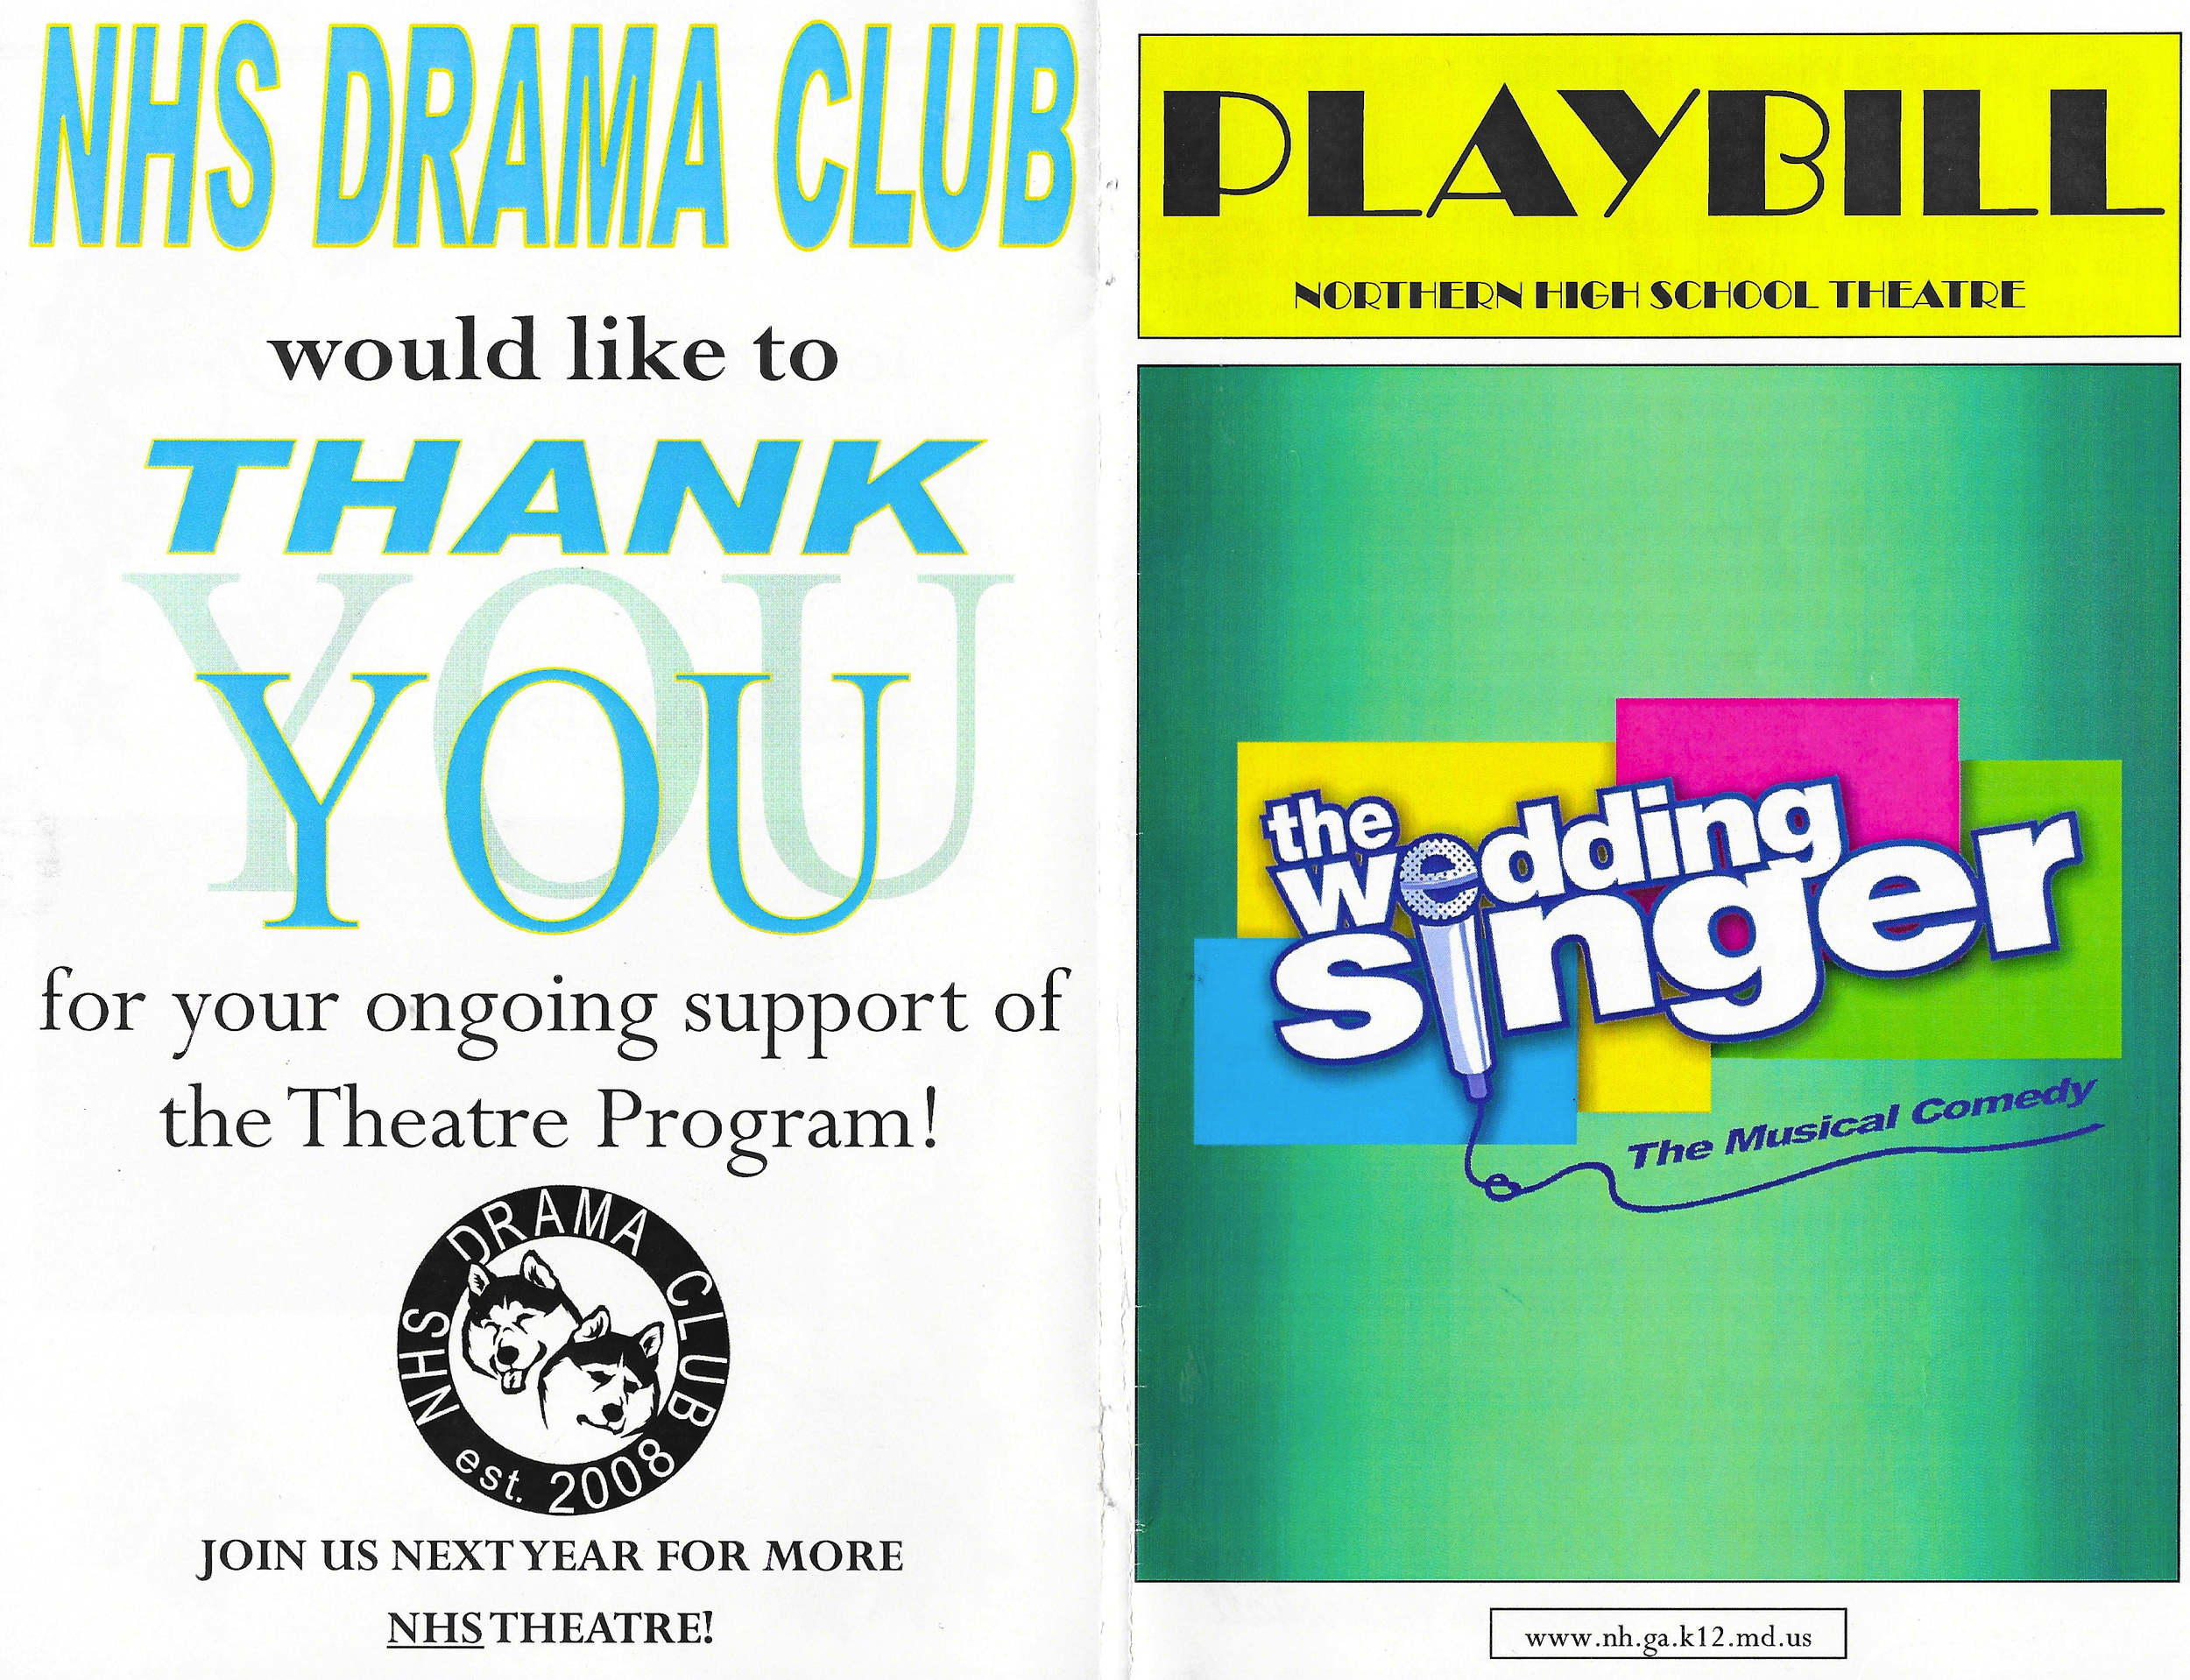 OUR WEDDING SINGER PLAYBILL